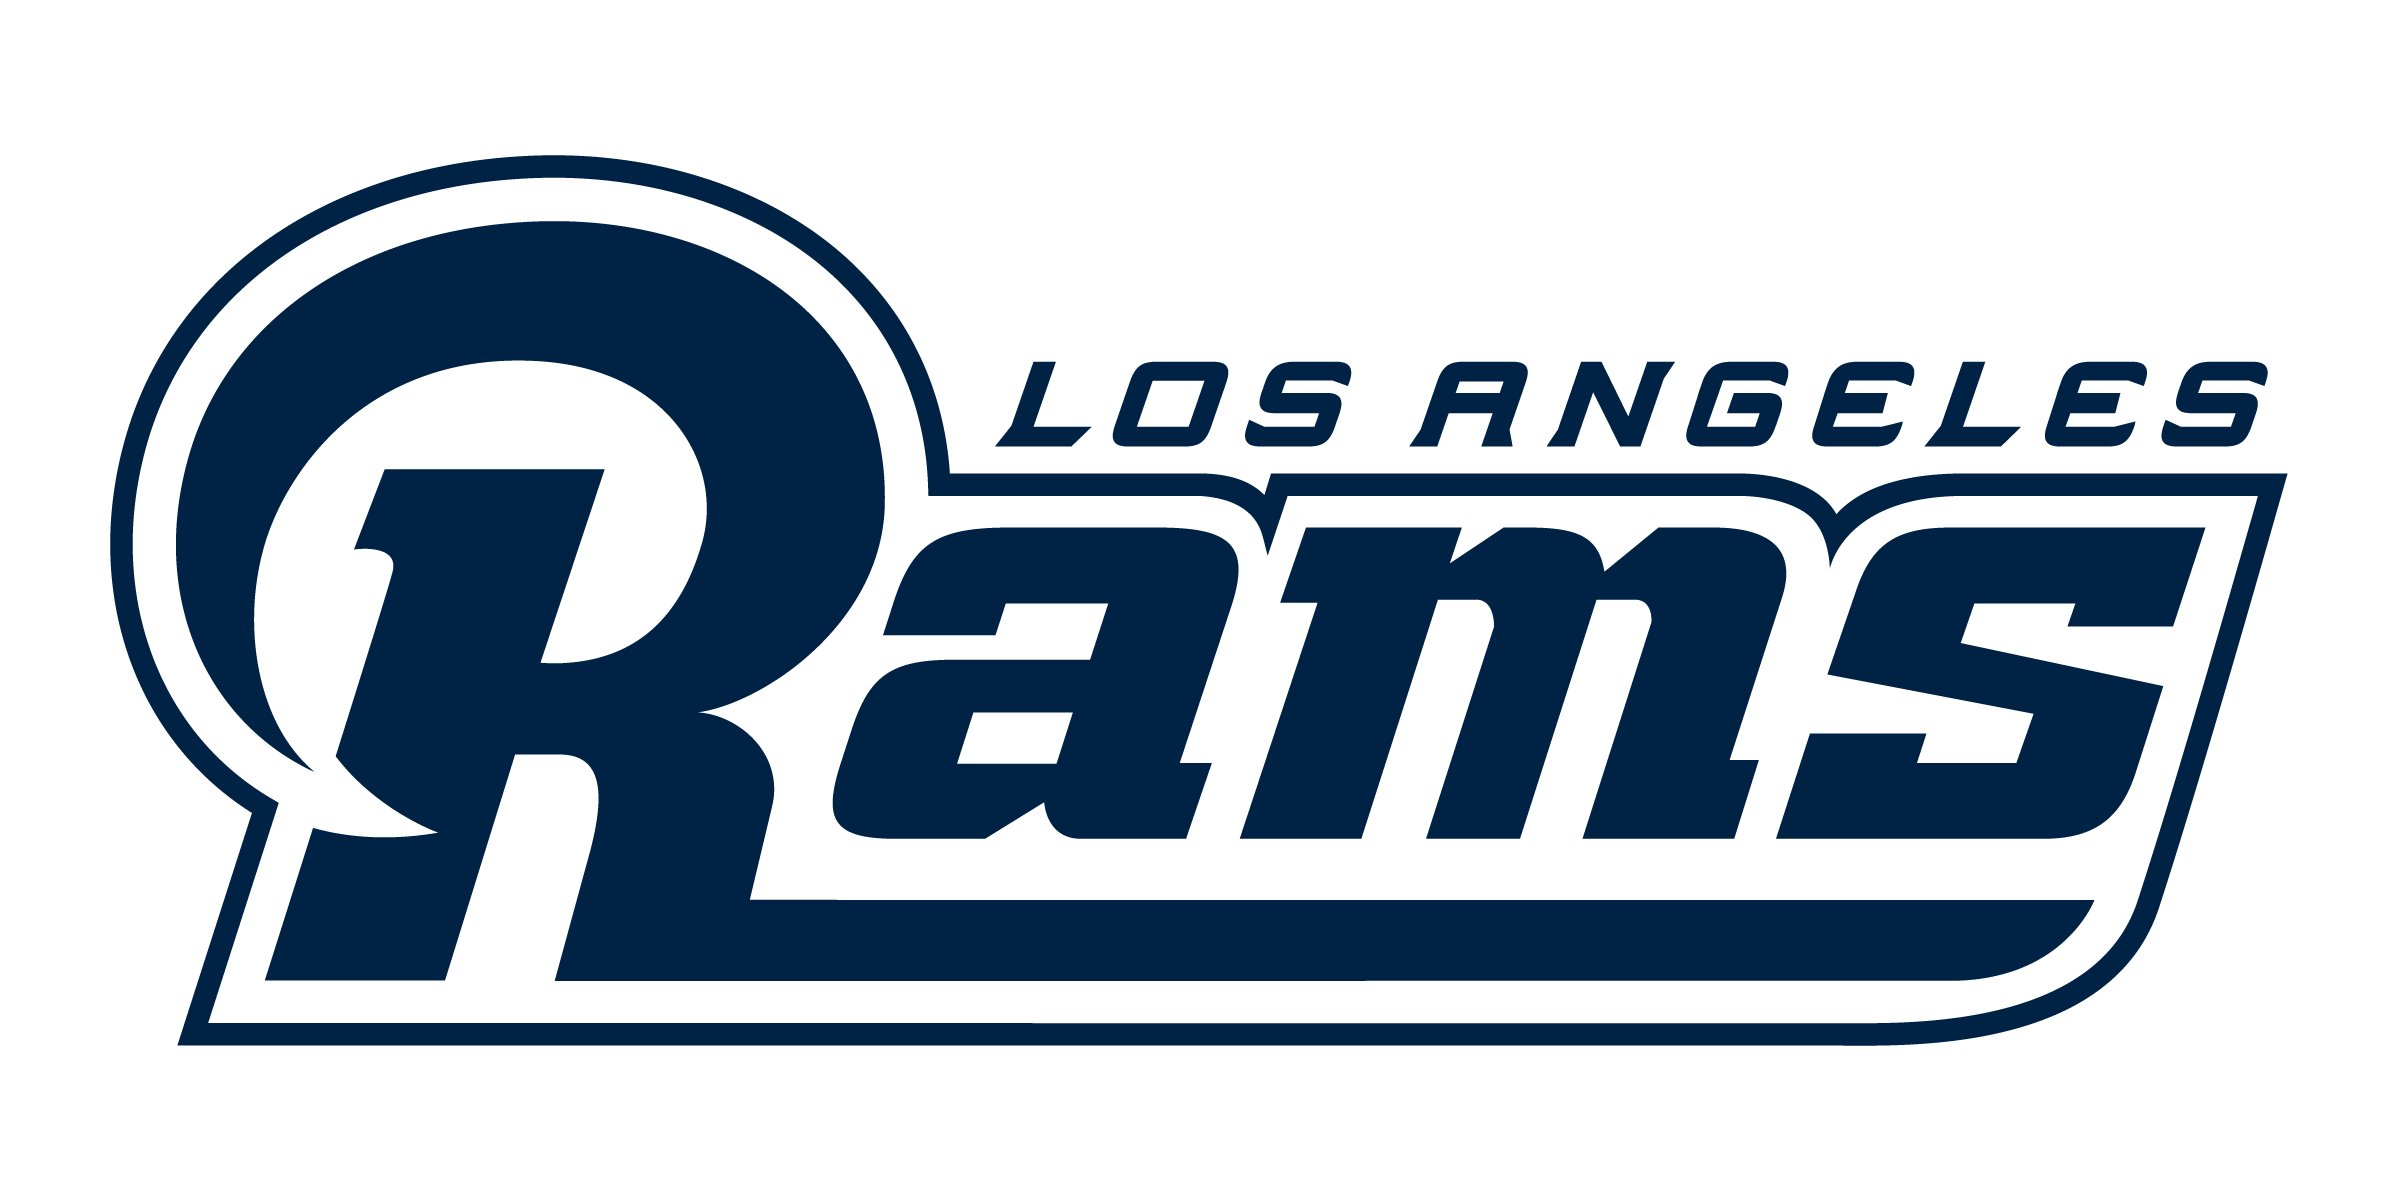 Los Angeles Rams (NFL)